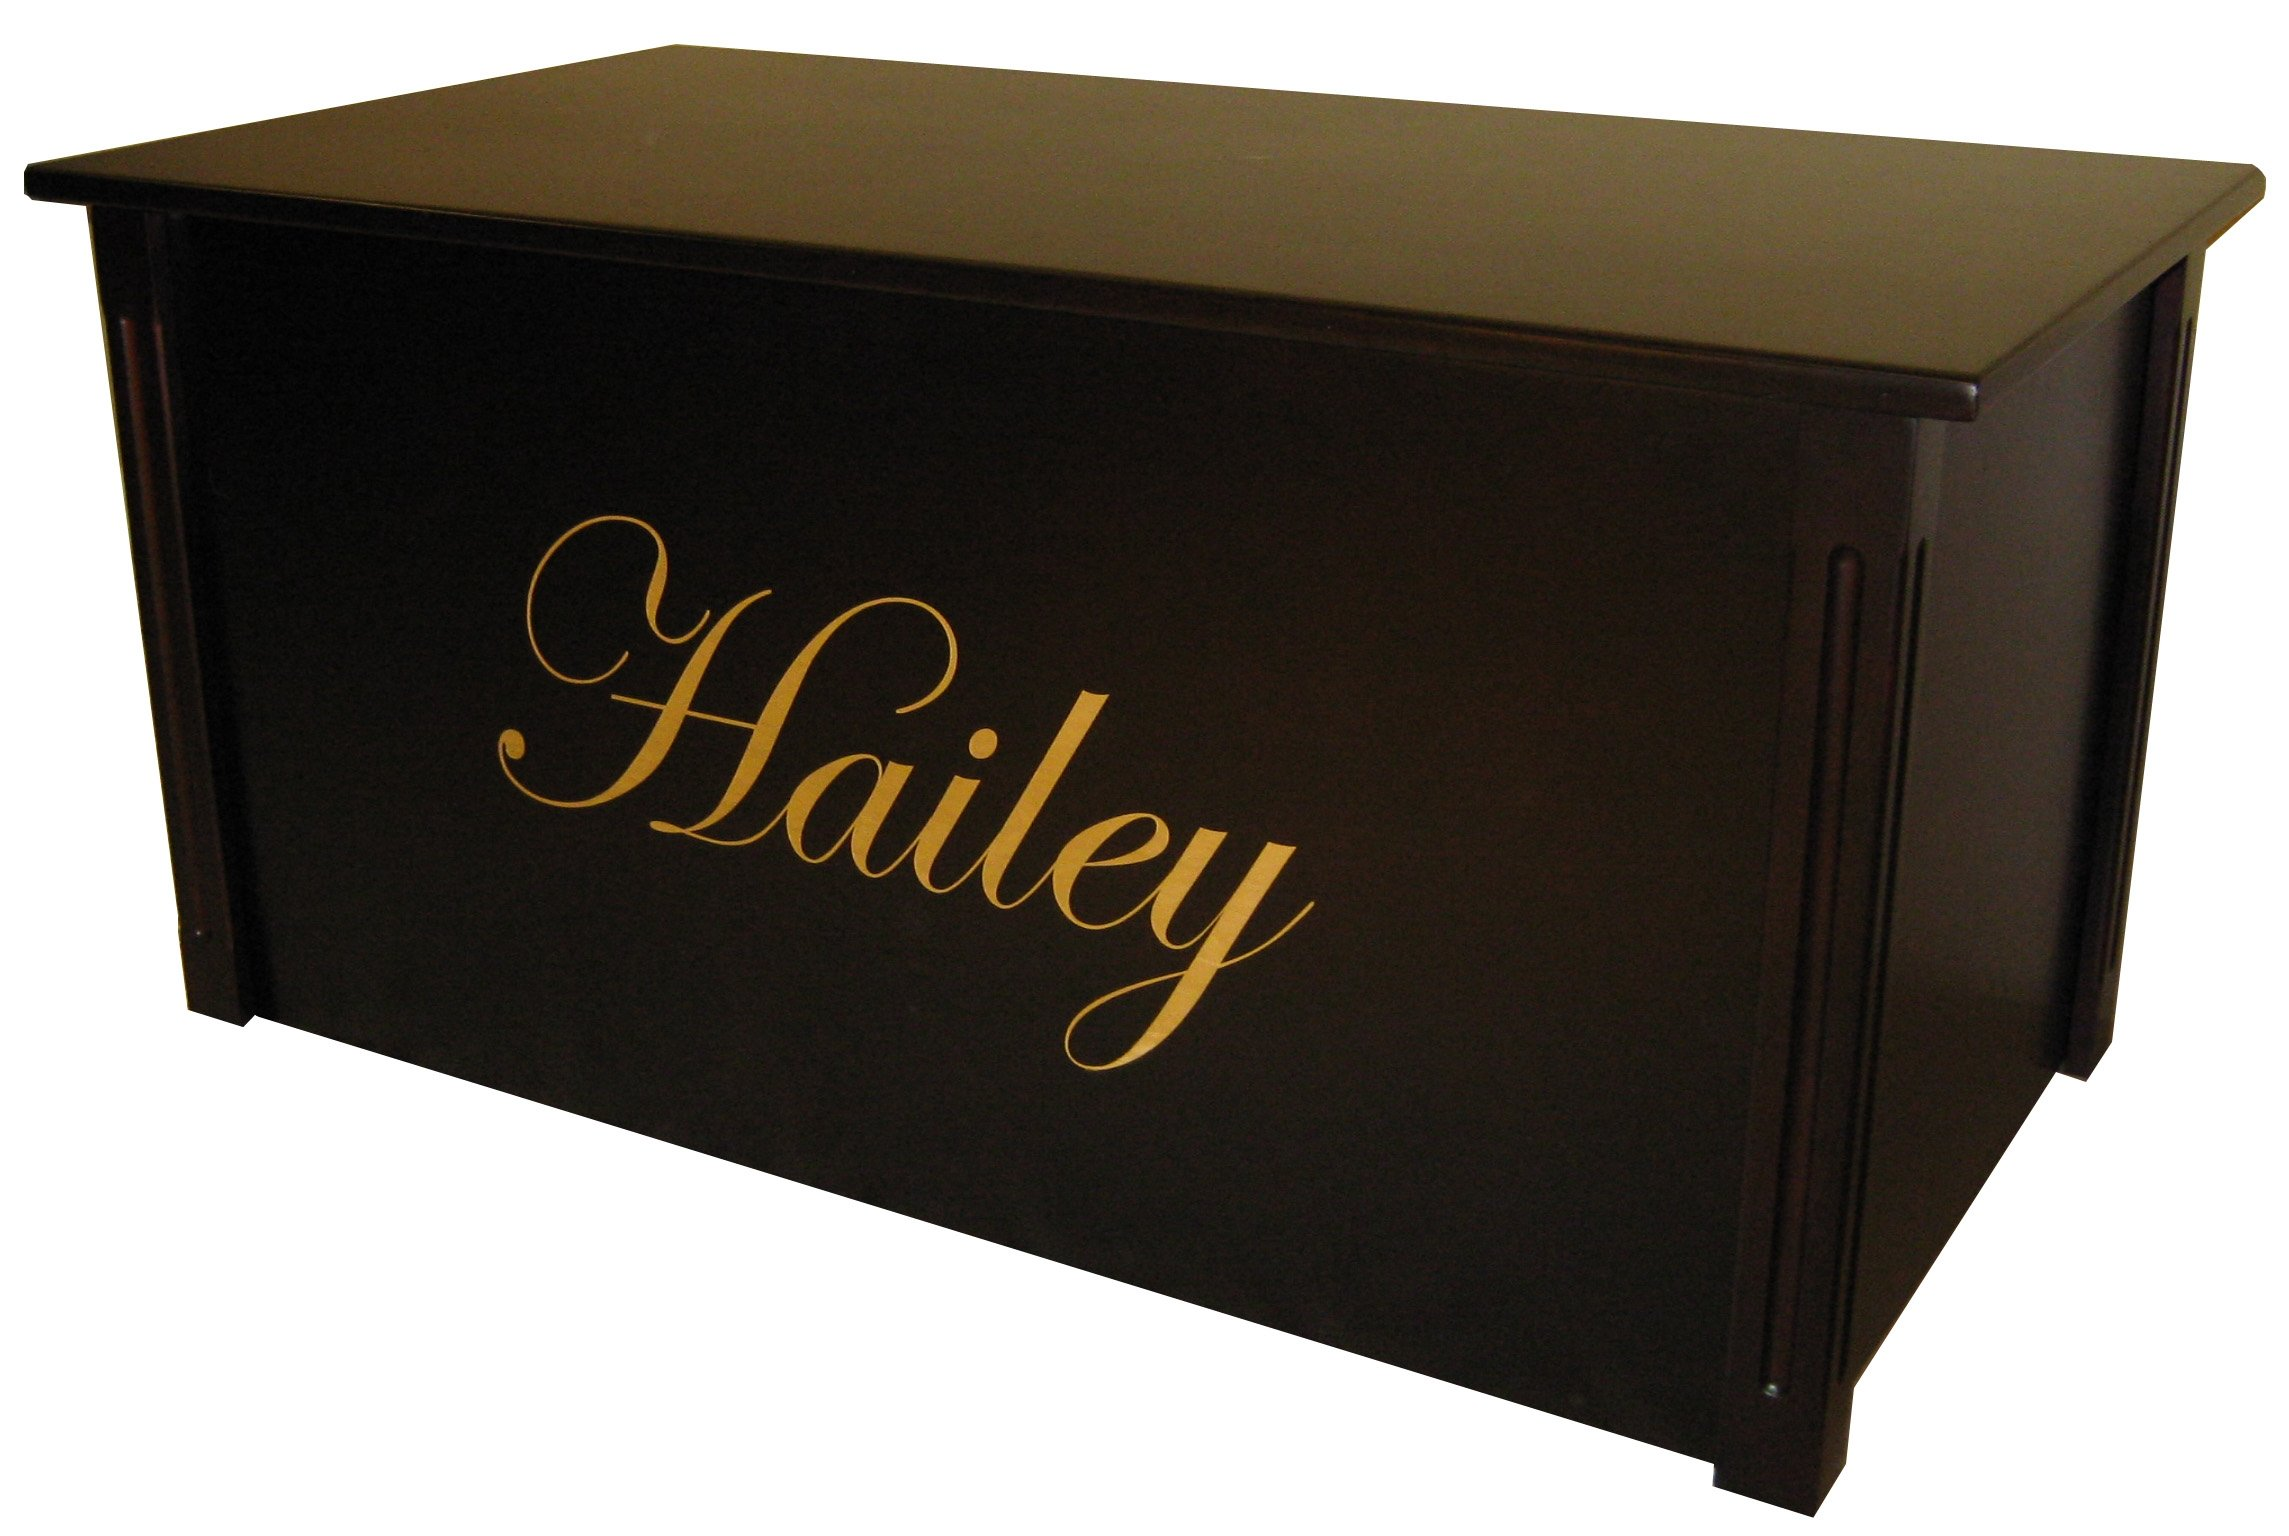 Wood Toy Box, Large Espresso Toy Chest, Personalized Edwardian Font, Custom Options (Cedar Base - Gold Lettering)